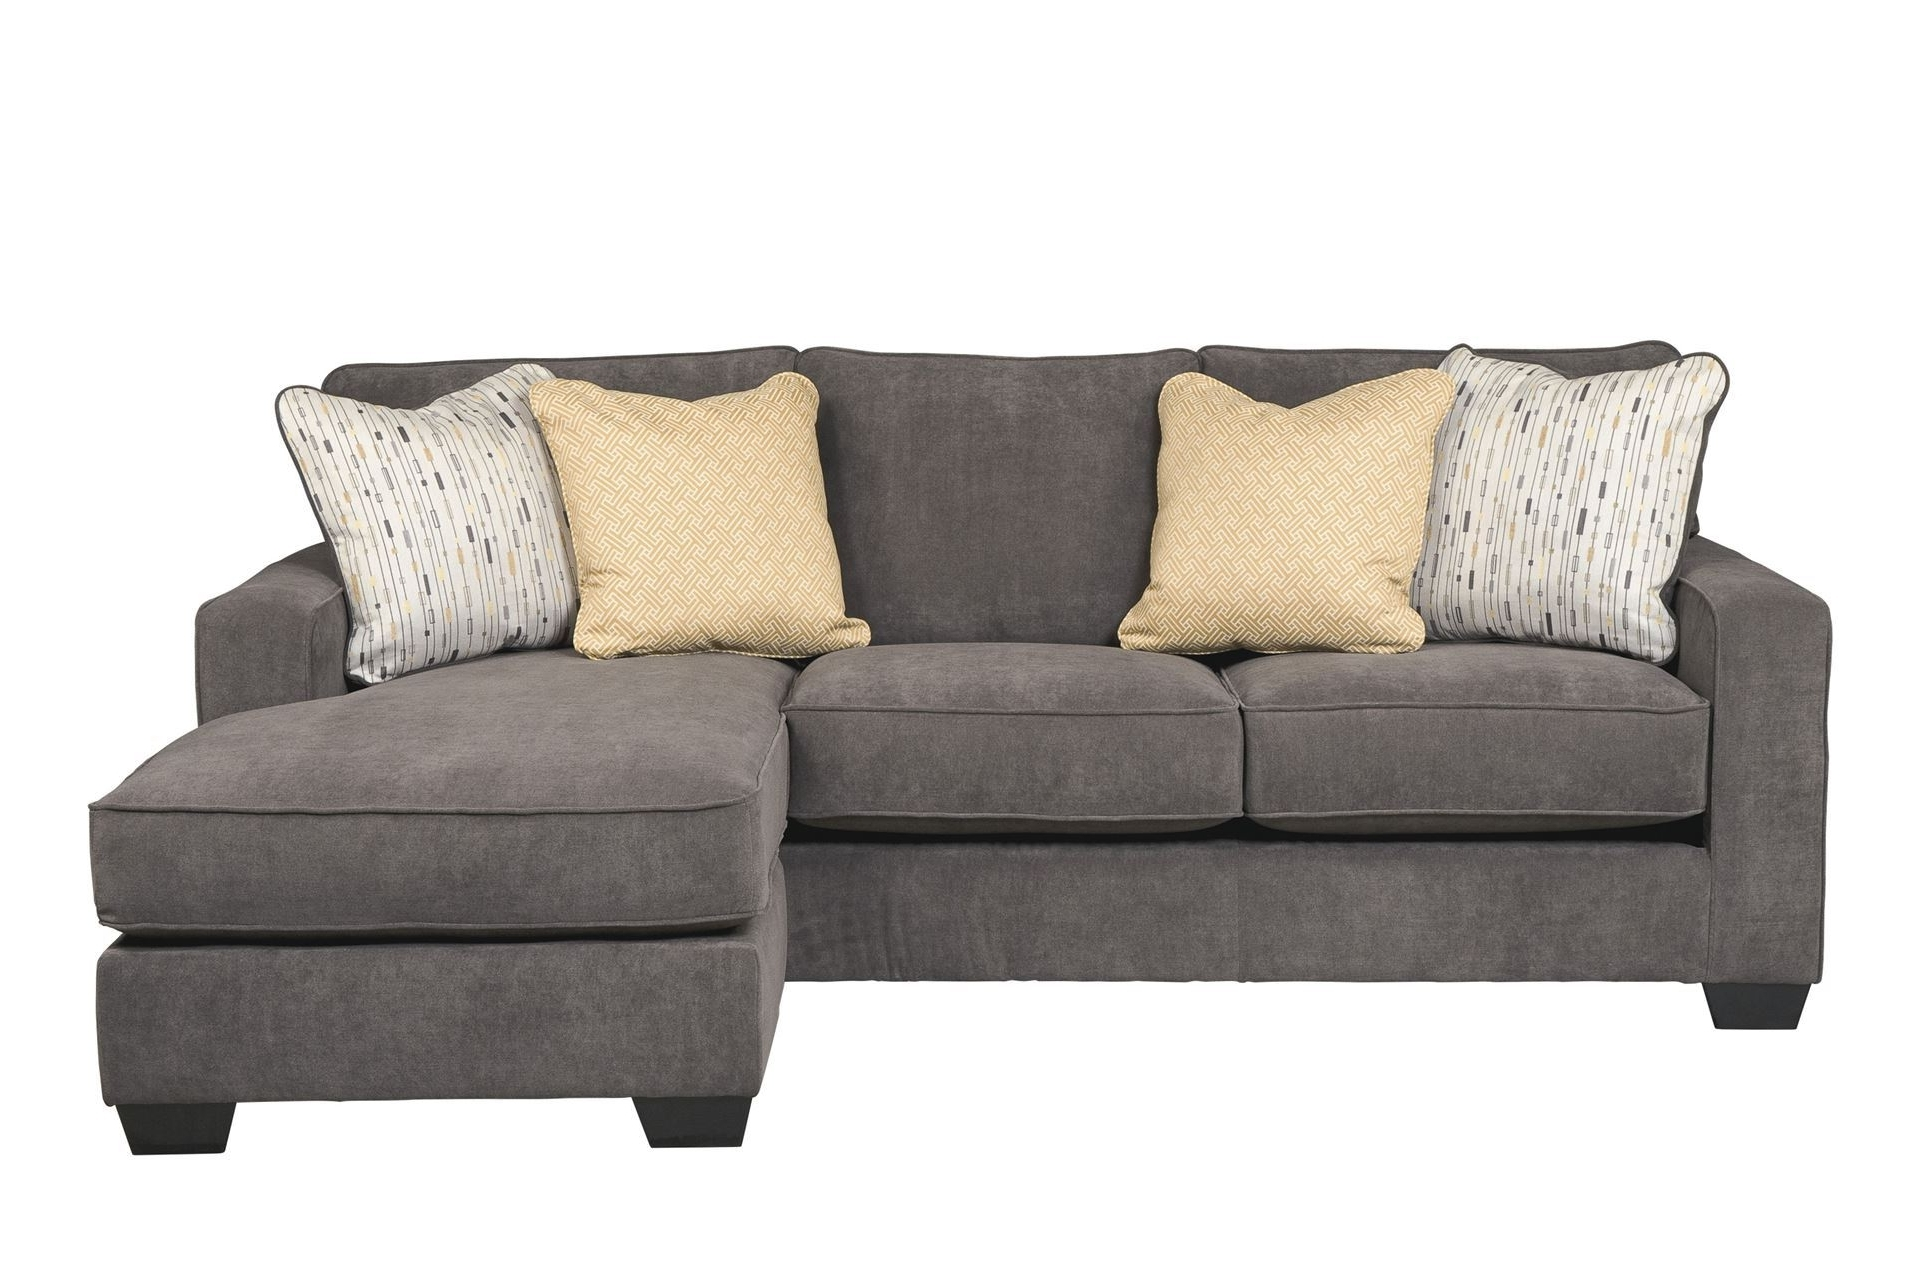 Best And Newest Grey Chaise Sofas For The Ideal Solution For Small Spaces – Sectional With Sleeper Sofa (View 4 of 15)